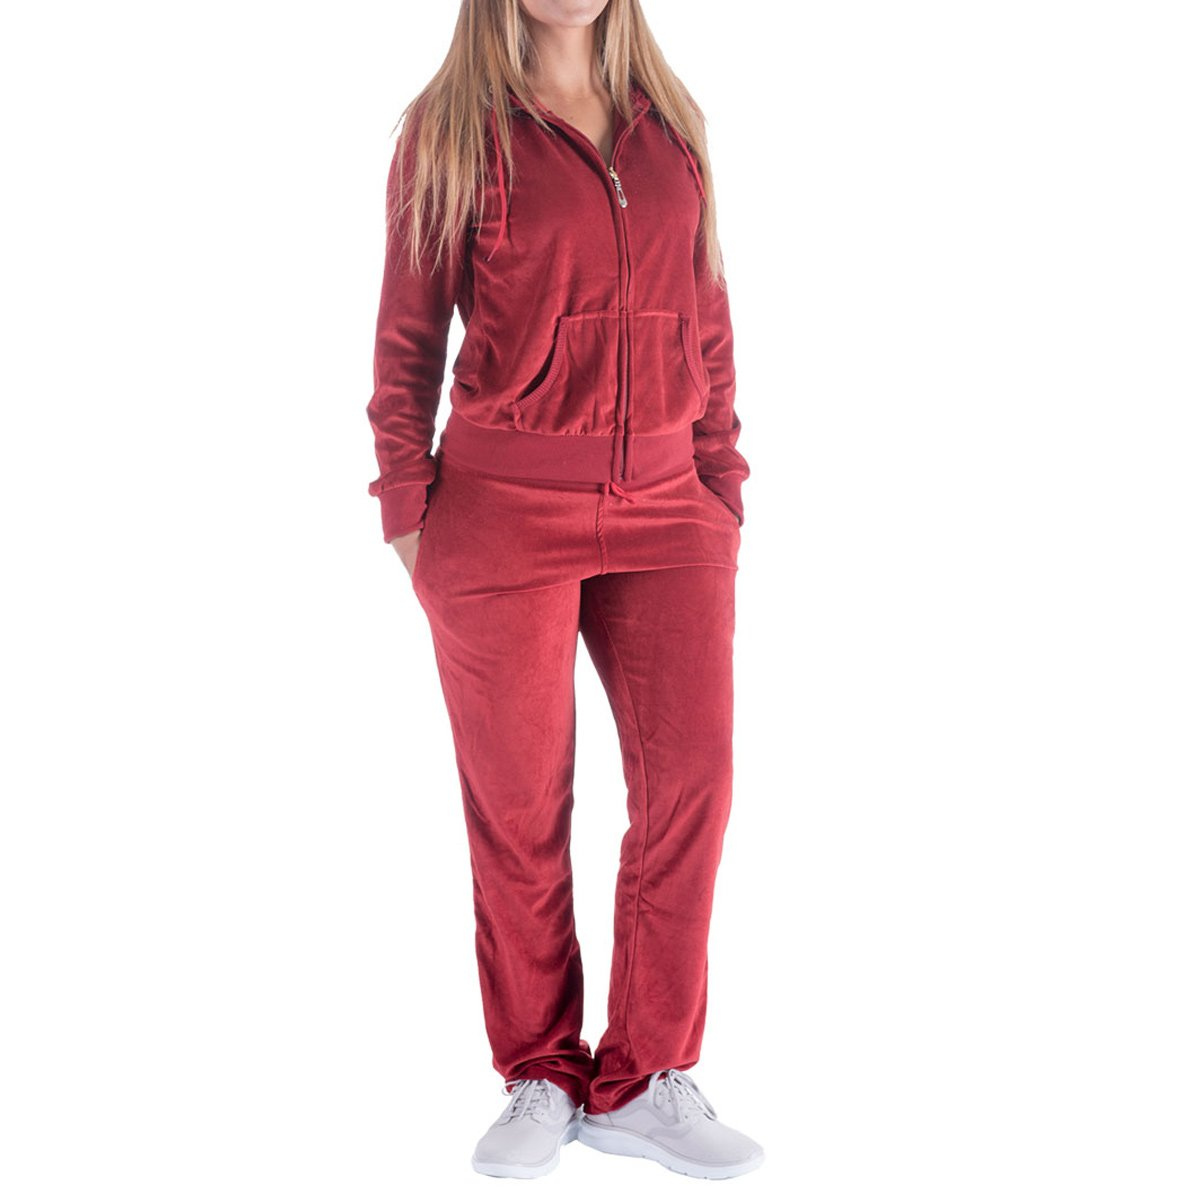 9498b072127f95 FASHION  2 pieces velvet tracksuit sweatsuit set including a hoodie  matching a same color velvet sweatpants that make a beauty of coordination  which is on ...